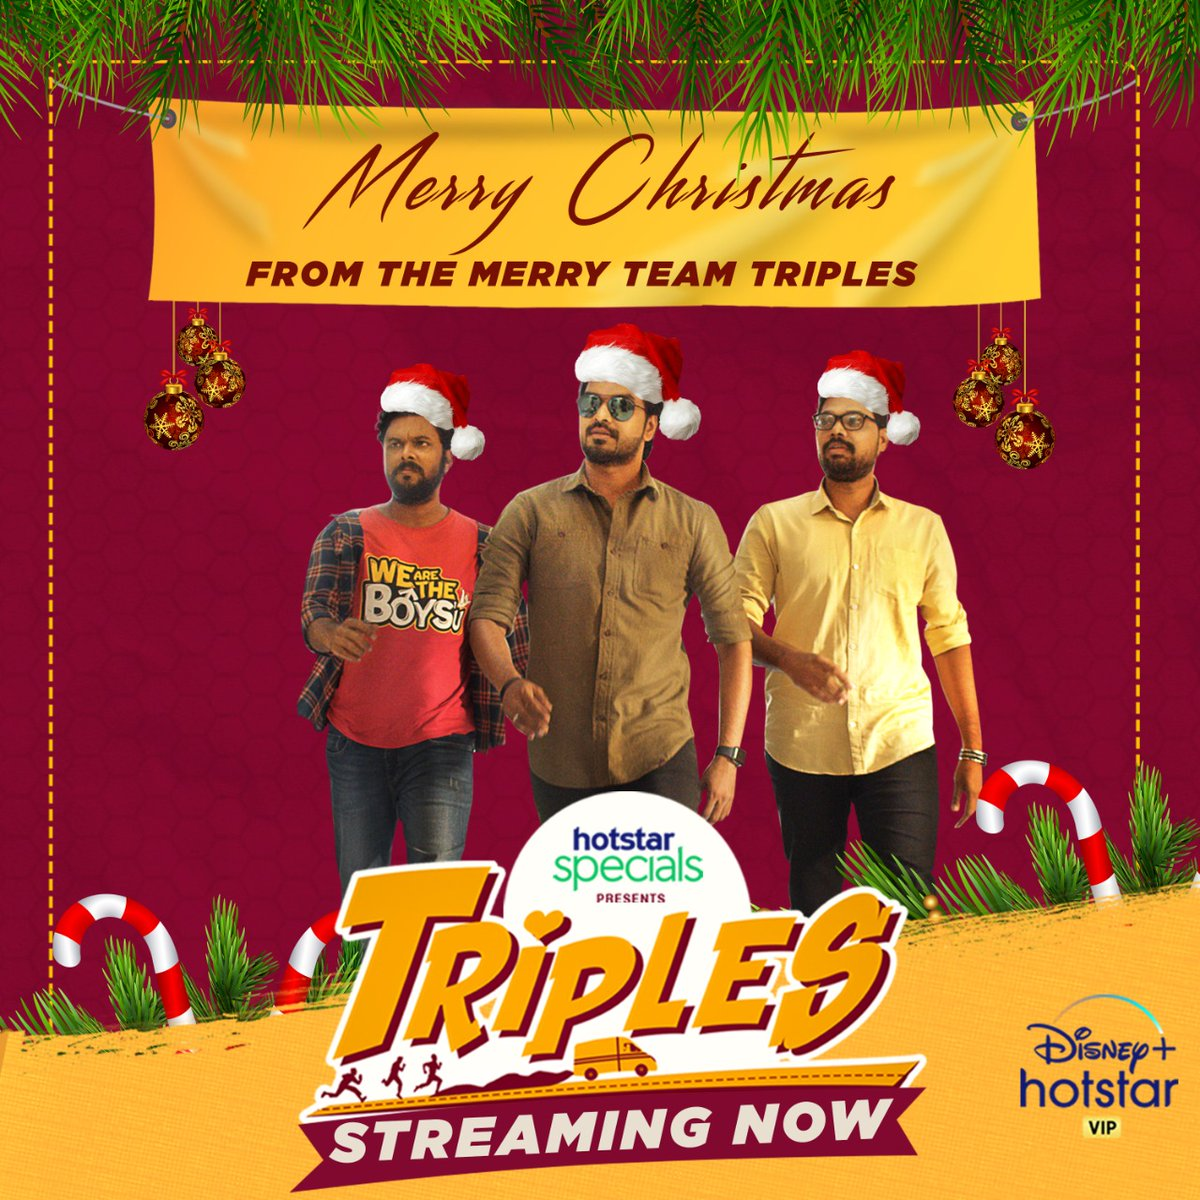 Jingle bells.. Jingle bells... Triples all the way!!! Celebrate this holiday season with the 'Triples' only on @DisneyplushsVIP #triples #triplesthefun